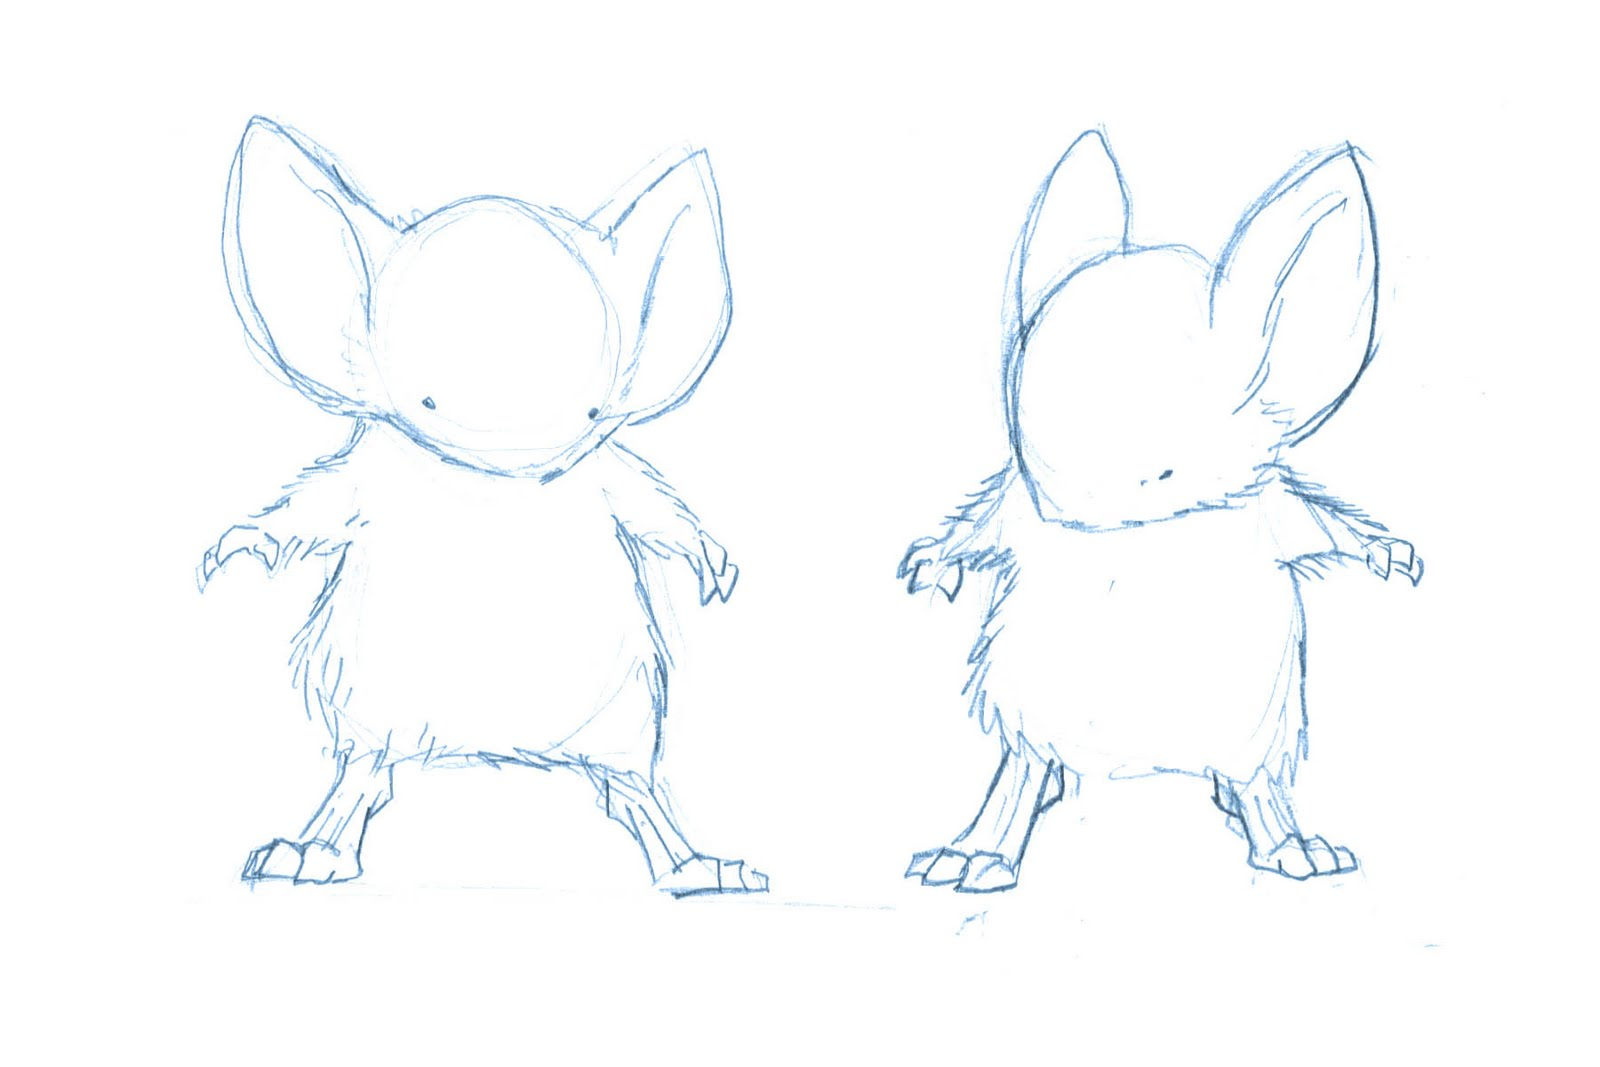 Line Drawing Mouse : Quality doodles by kyle: mouse guard me 2.